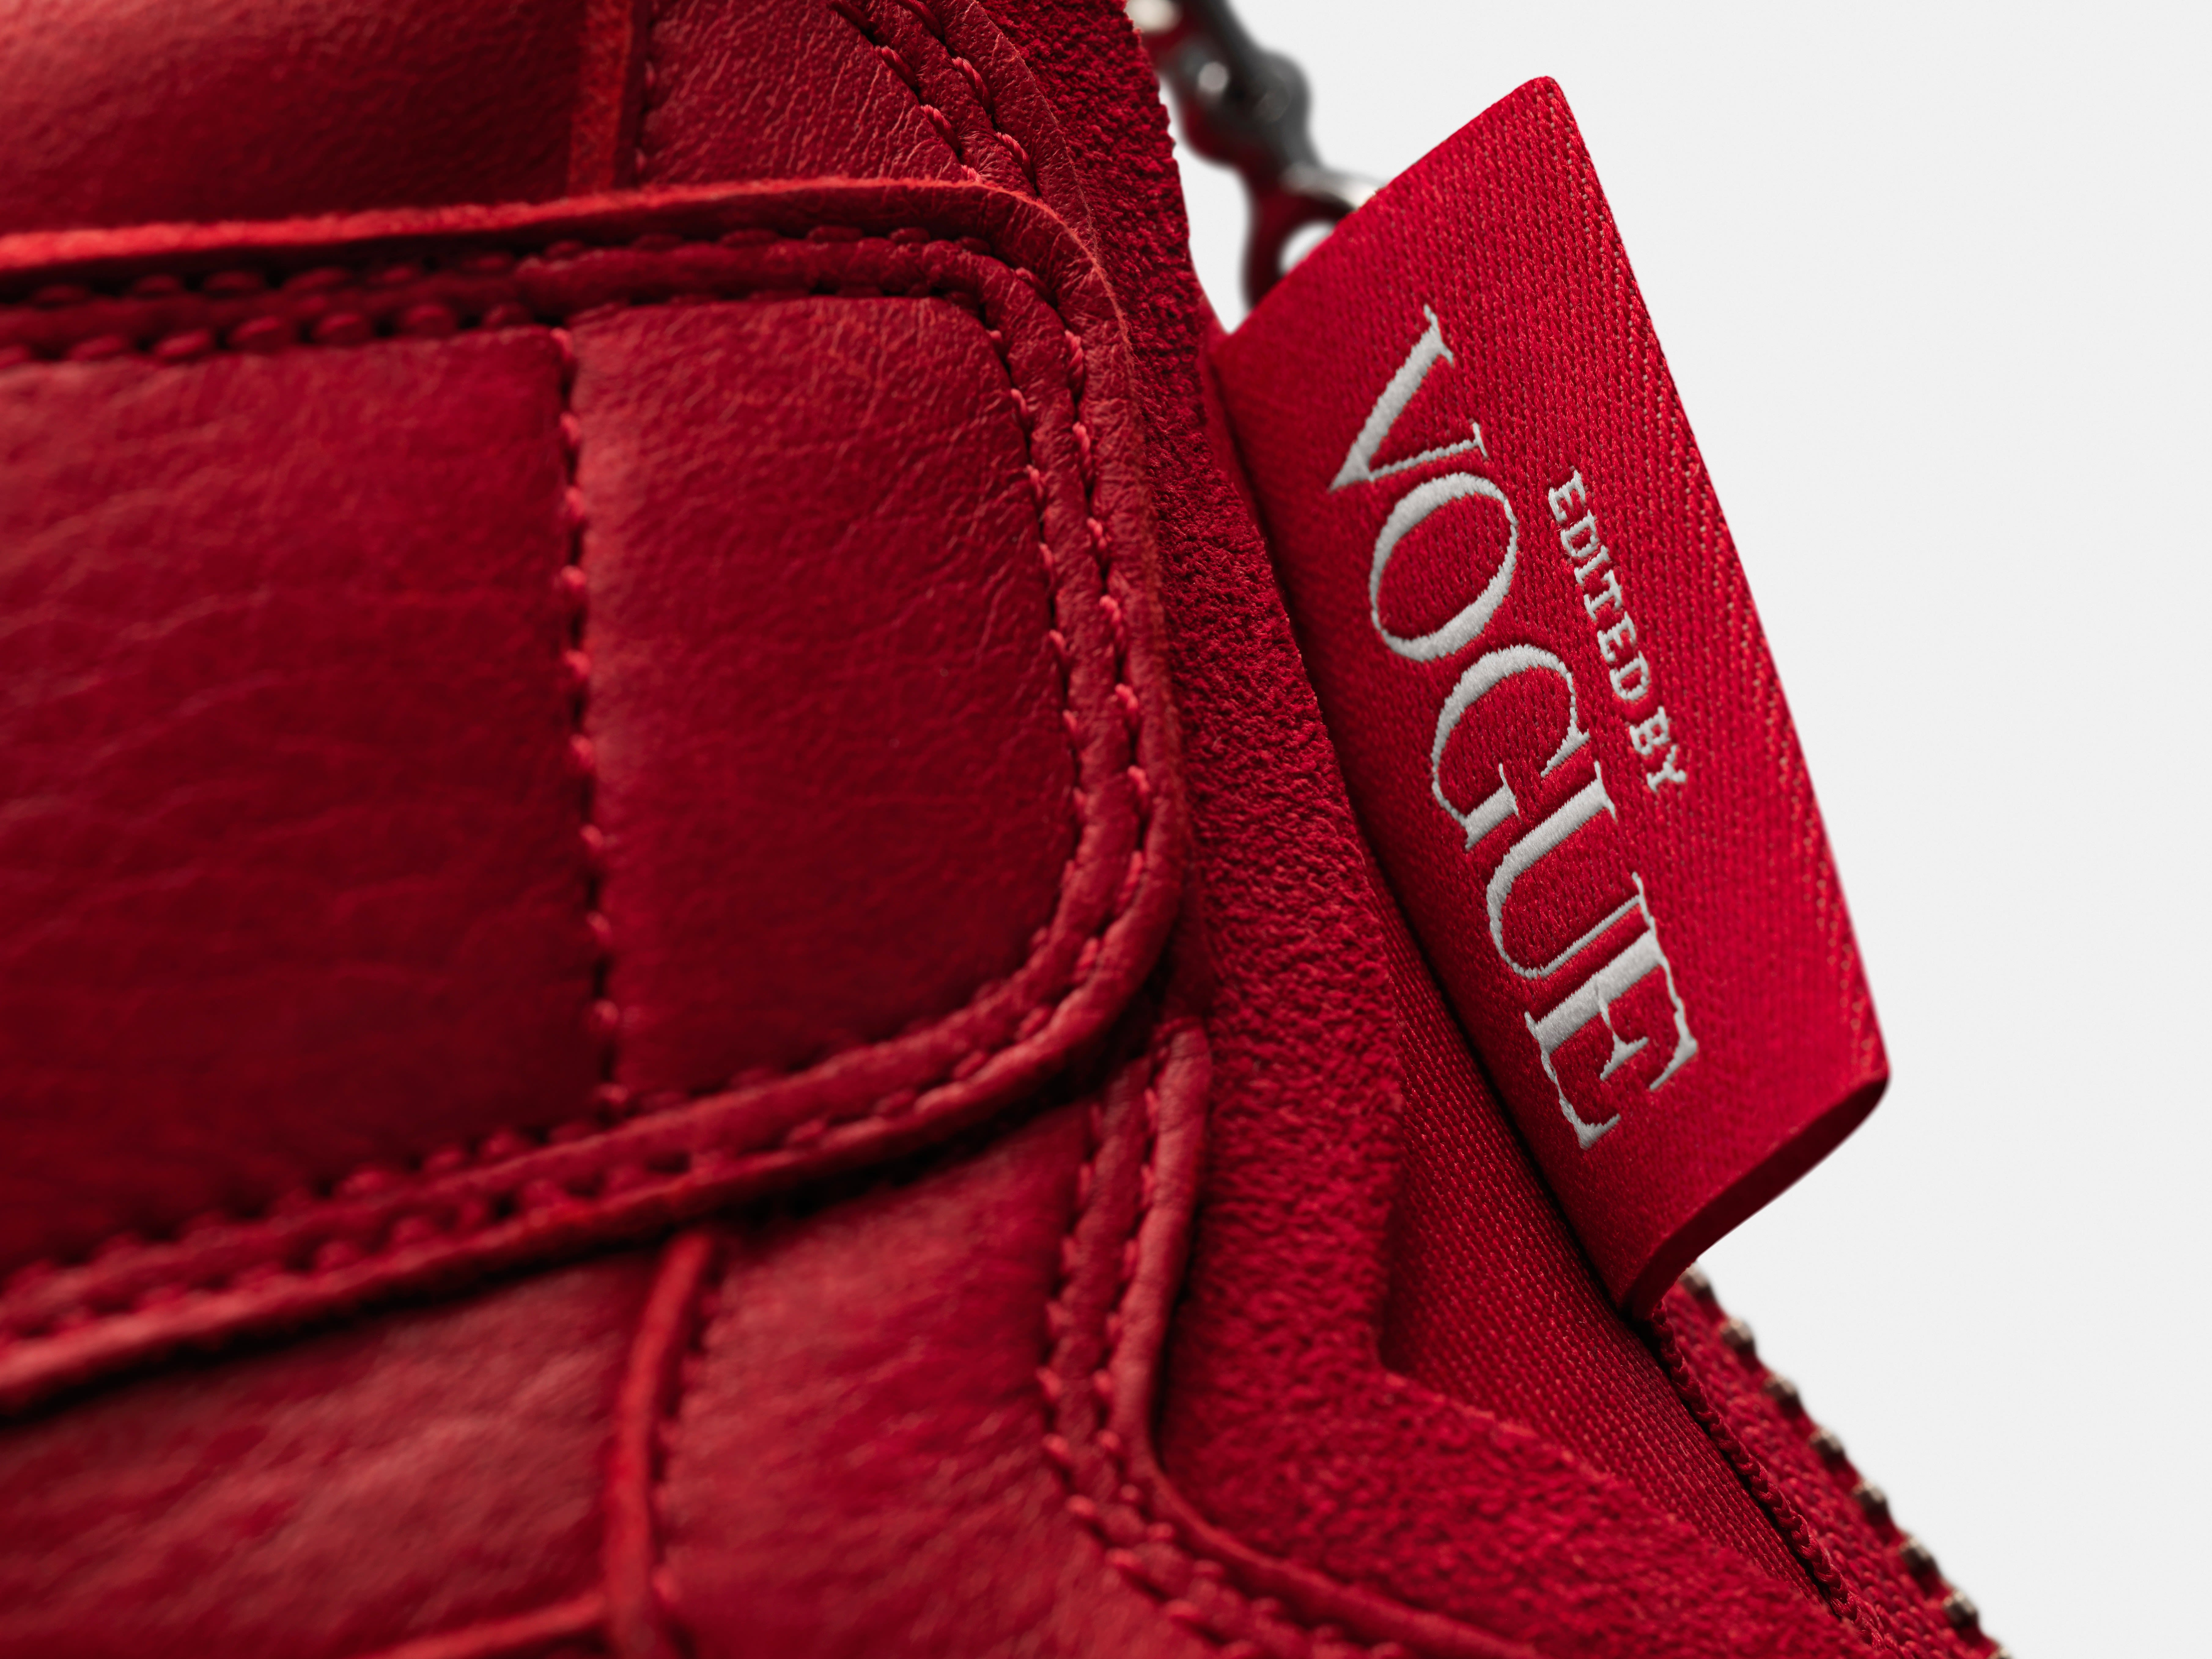 Vogue x Air Jordan 1 Zip AWOK 'University Red' (Detail)